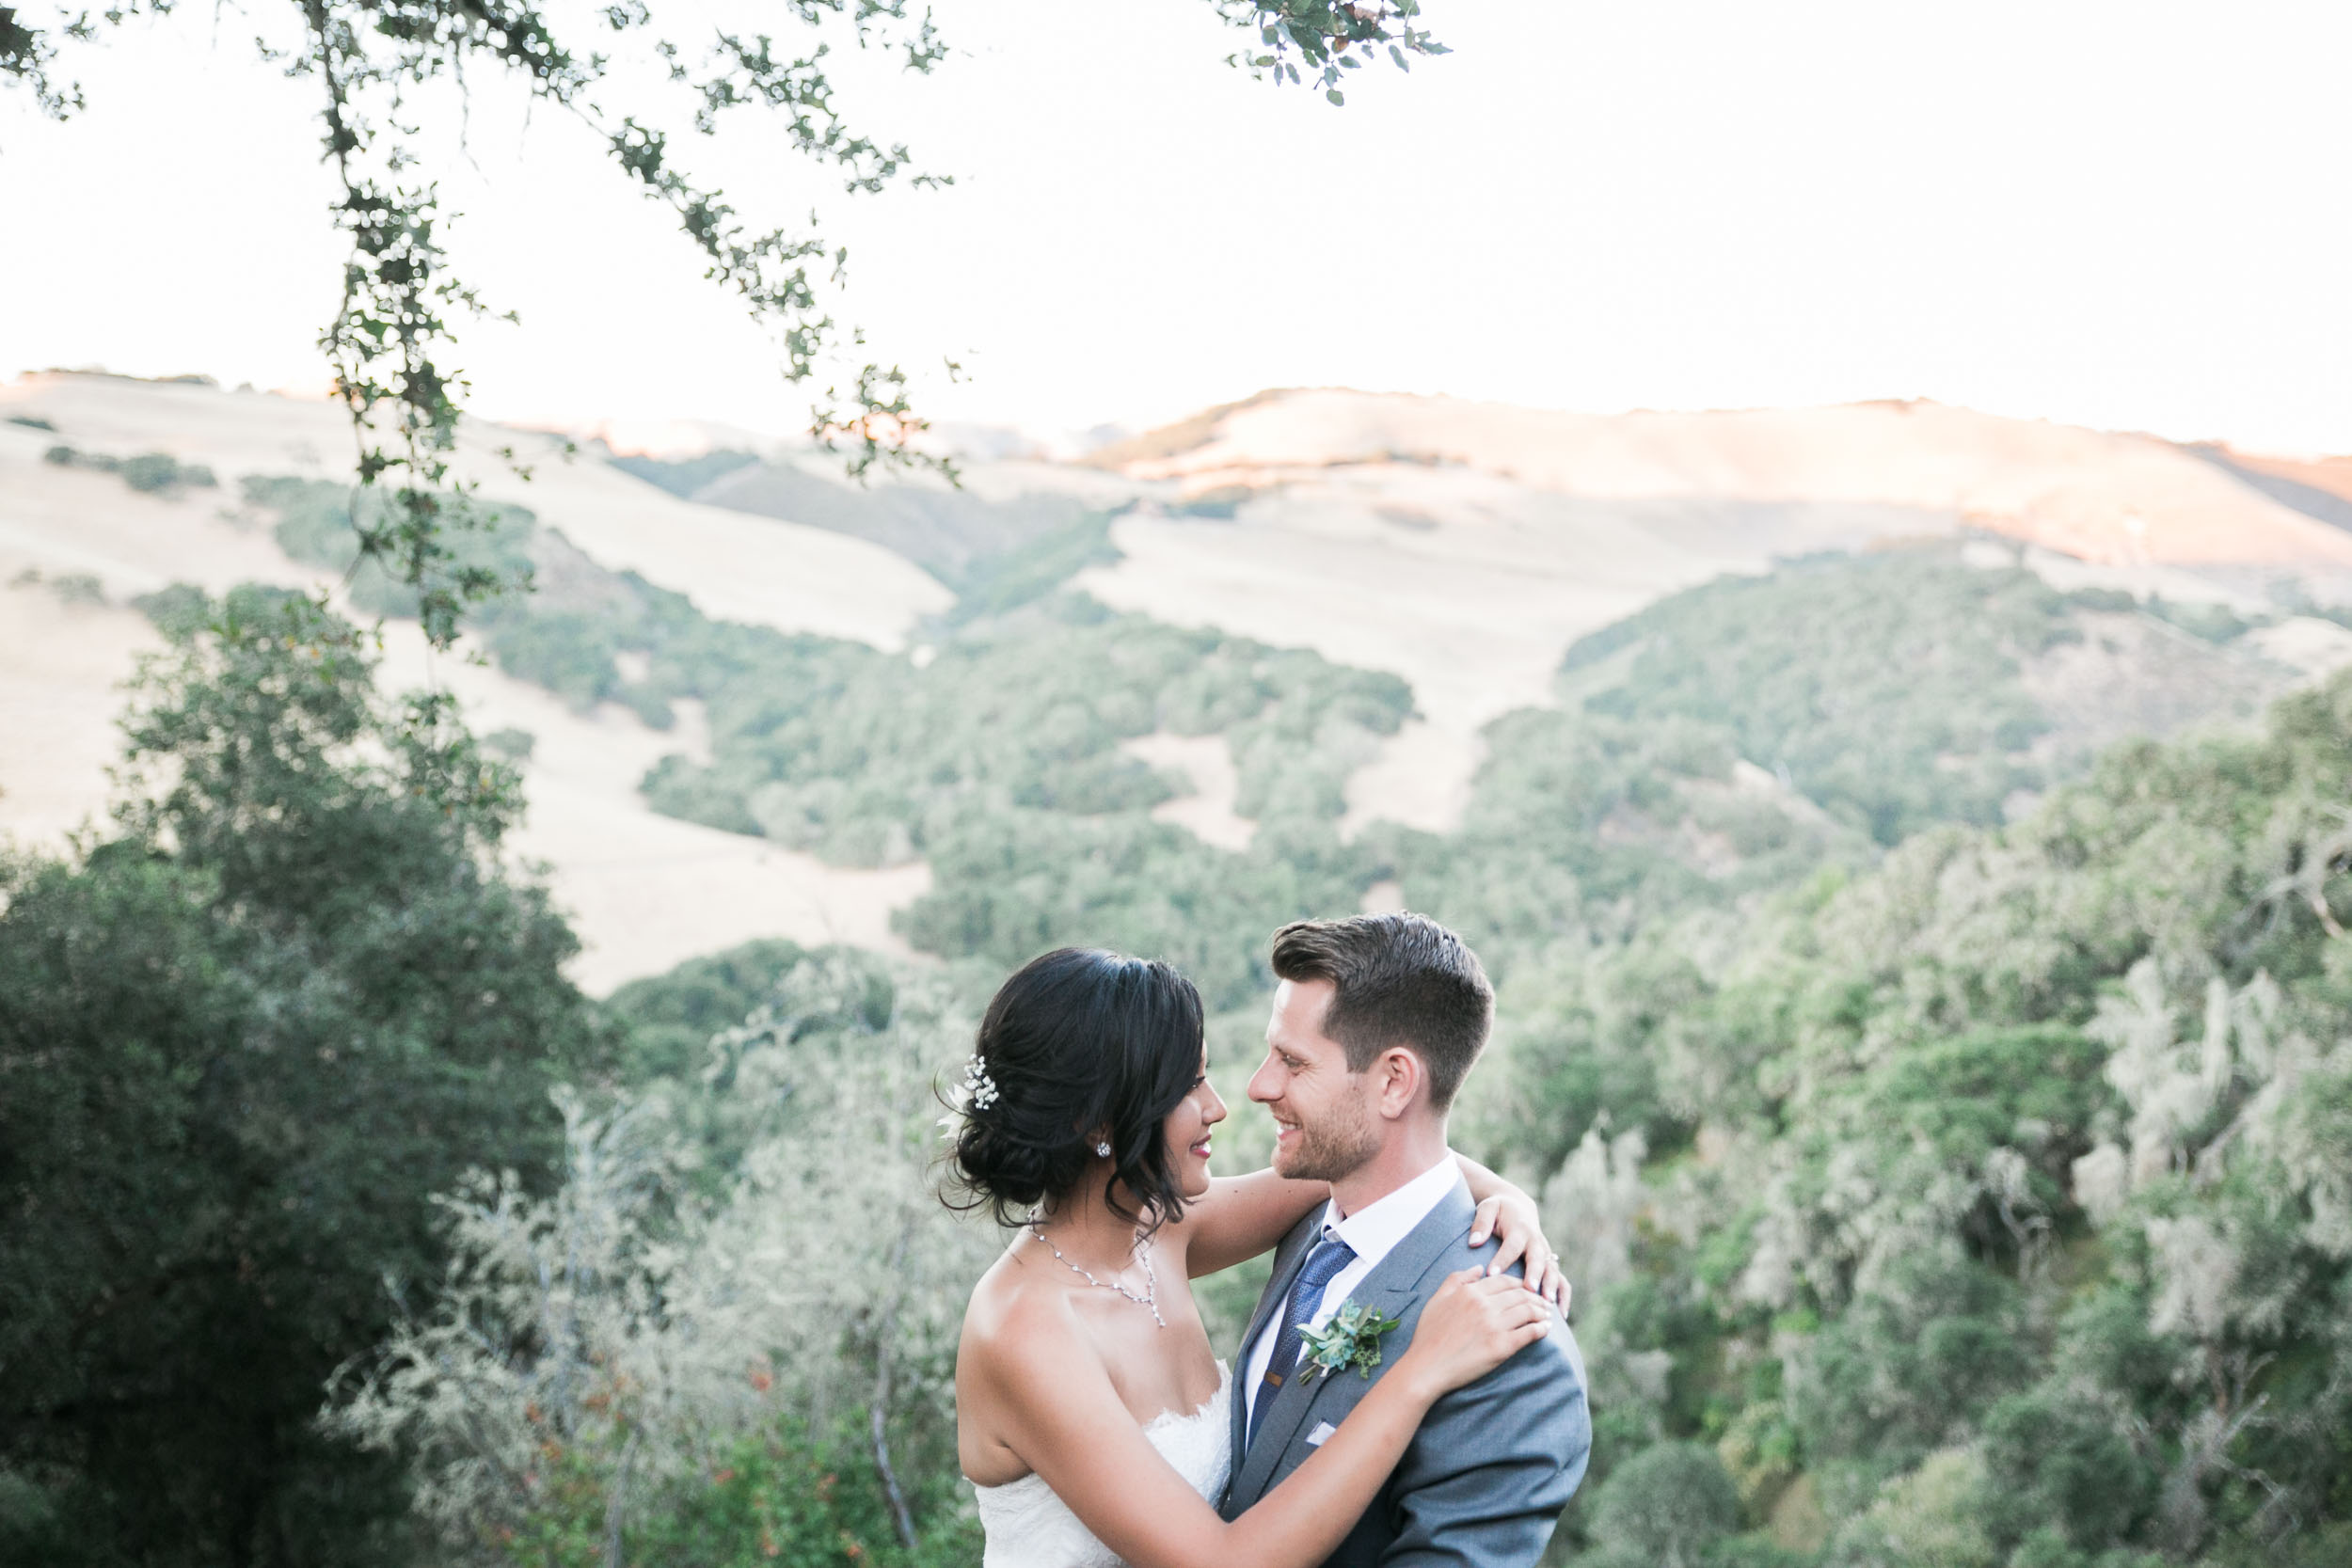 Intimate Summer Solstice Wedding_Carmel Valley_Buena Lane Photography_80.jpg